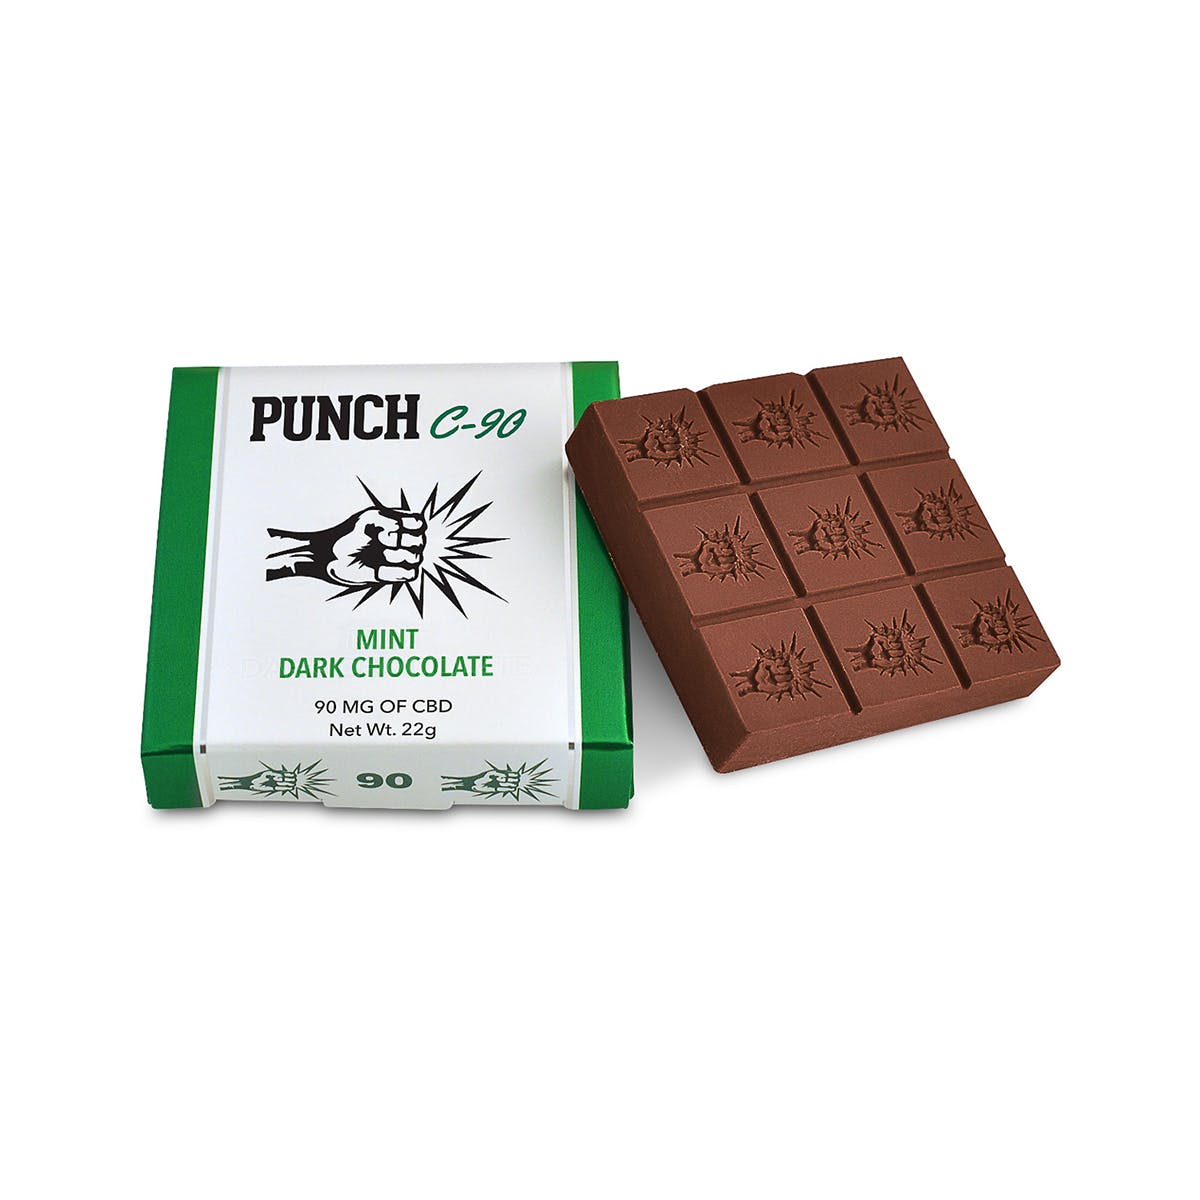 marijuana-dispensaries-county-line-organics-in-ridgecrest-c-90-cbd-mint-dark-chocolate-90mg